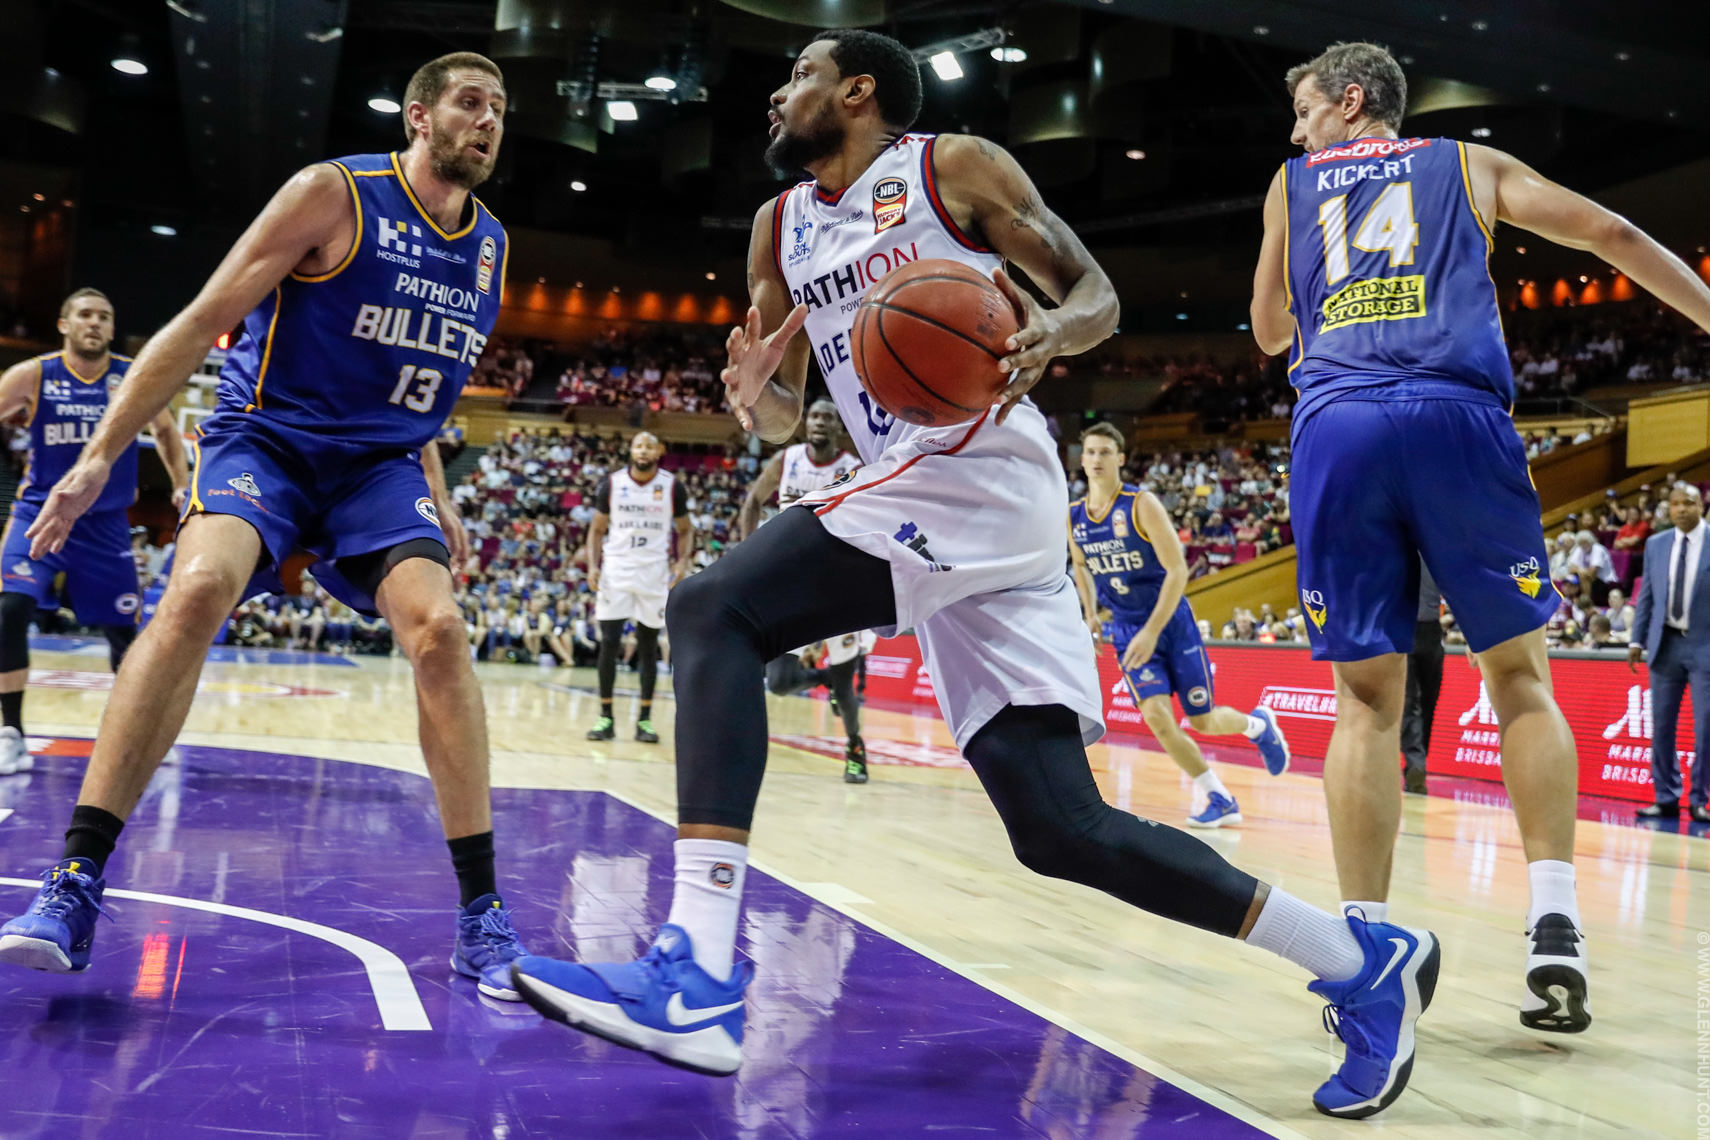 Adelaide36ers